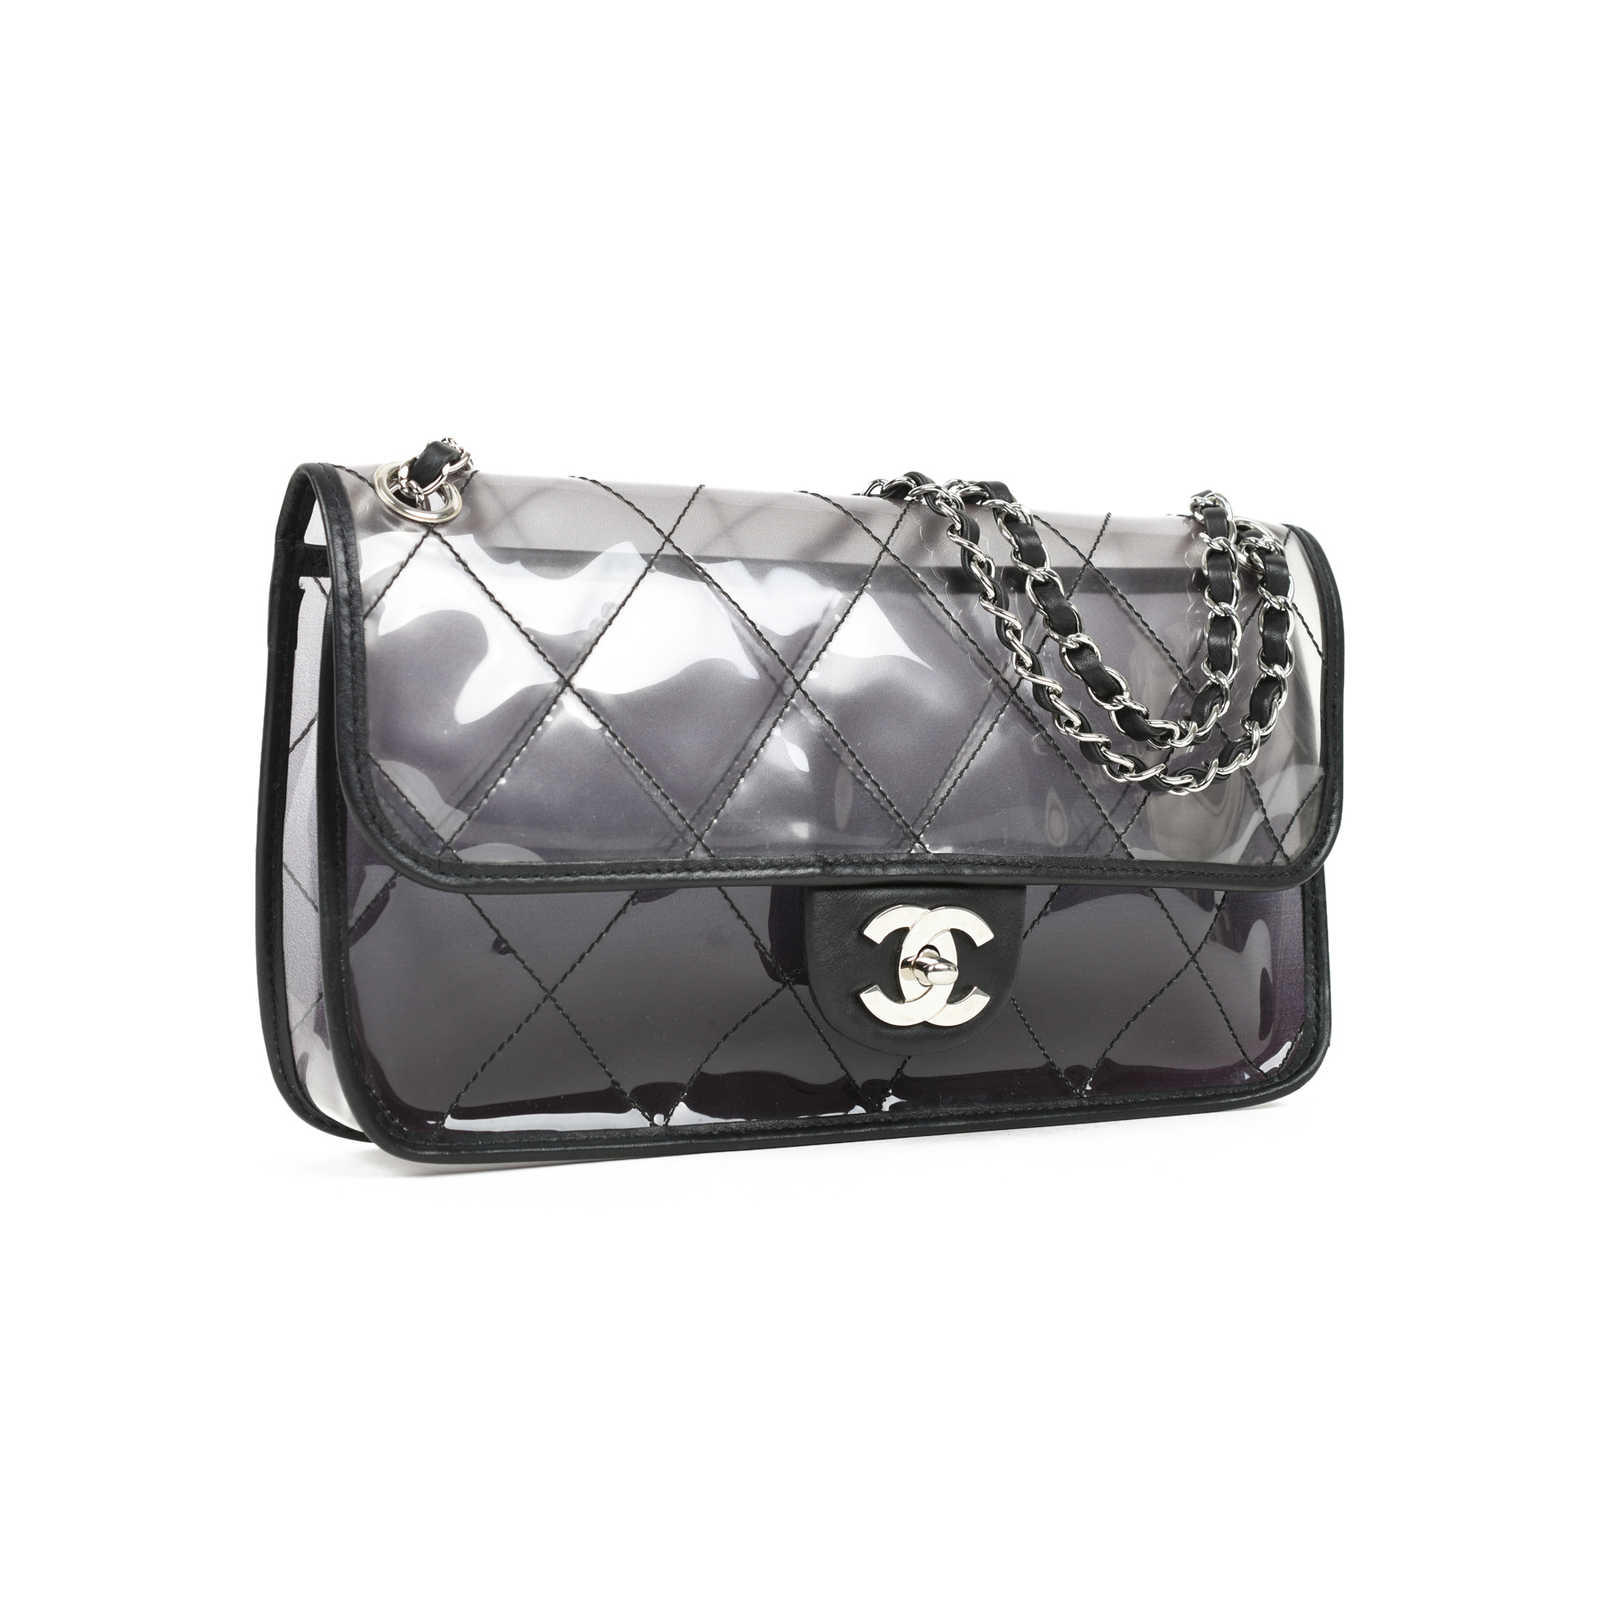 6131323eaac9 ... Authentic Second Hand Chanel PVC Naked Flap Bag (PSS-051-00328) ...